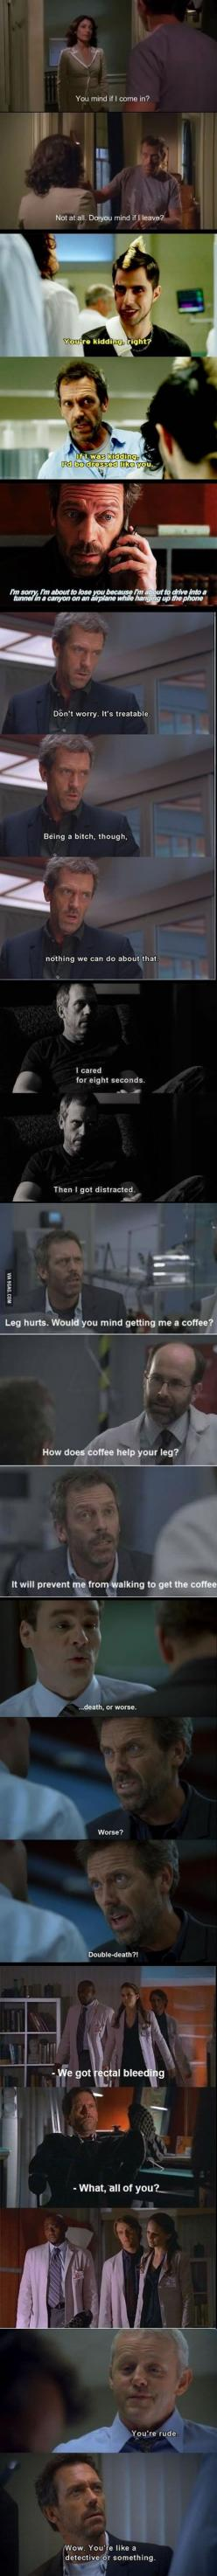 Paging Dr. House.: Movies Tv, House Sass, House M D, Dr. House, House Md Funny Quotes, Funny Tv, Dr House Funny, Fandom